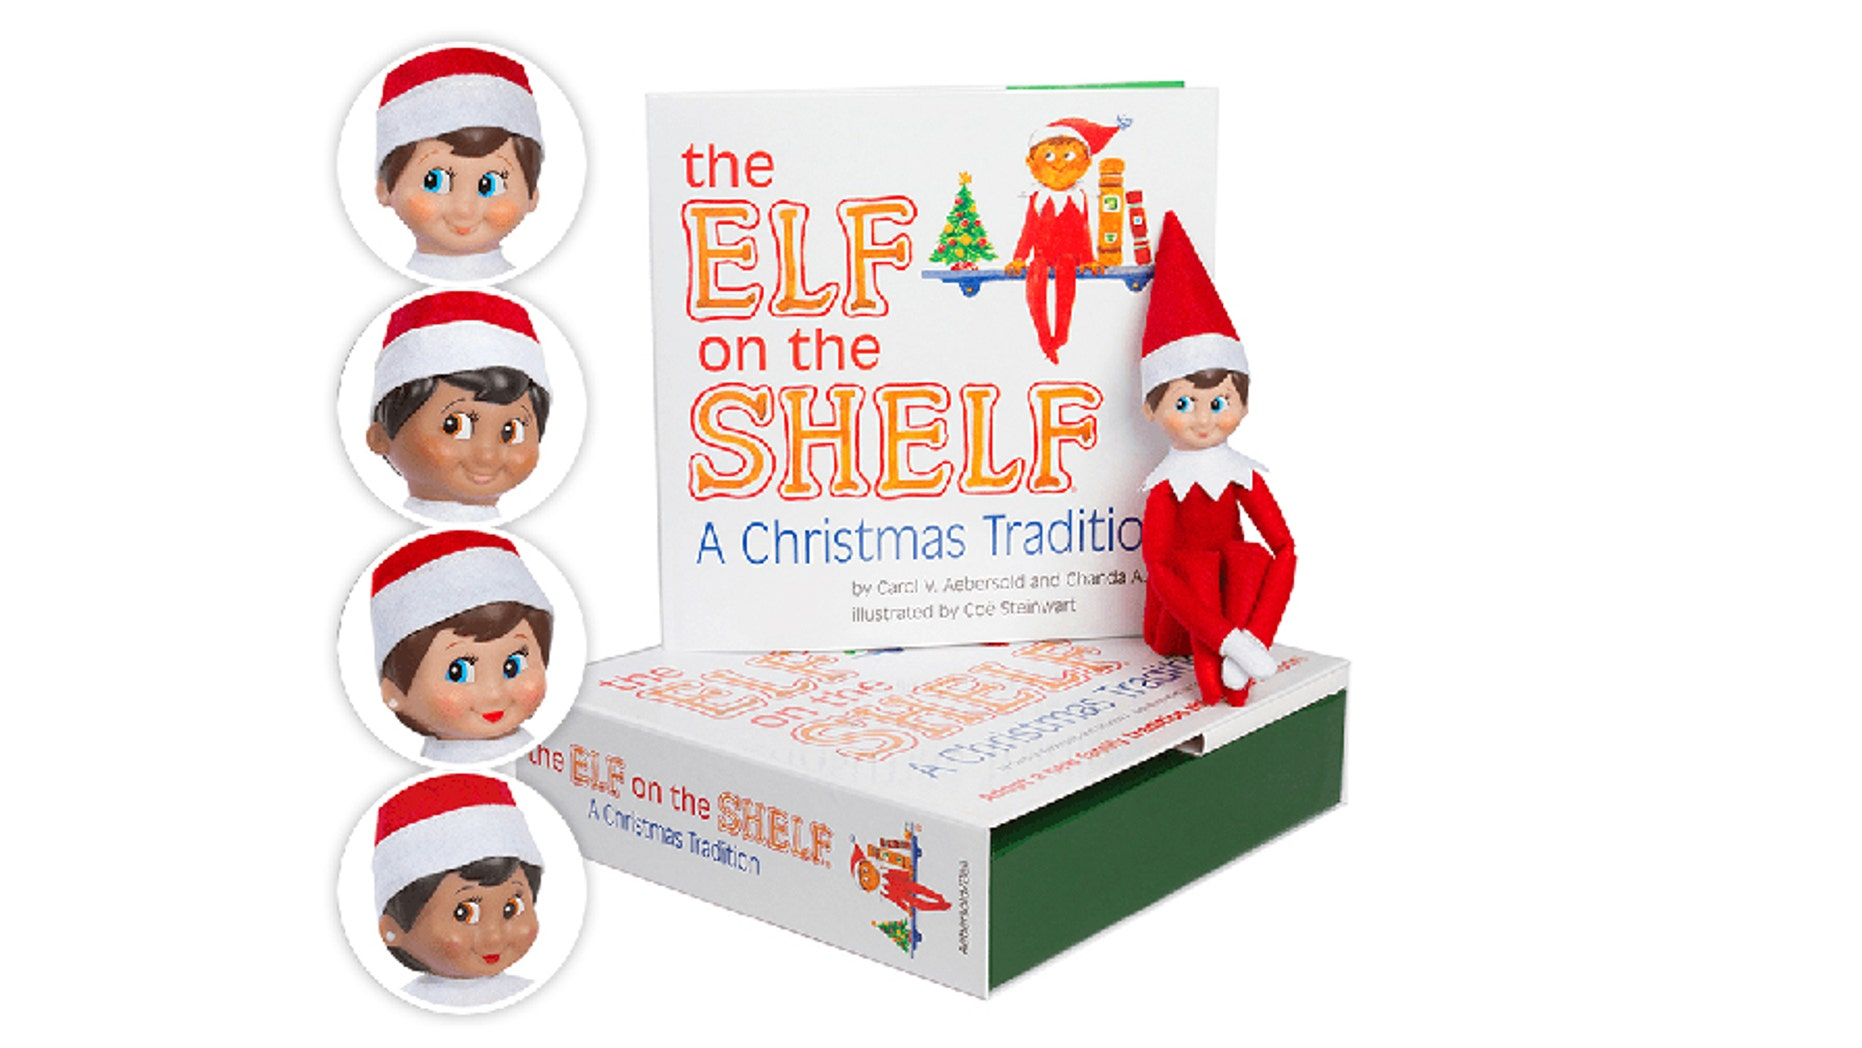 """Texas mom Brittany Mease posted on Facebook Monday about the nearly traumatic incident when she accidentally baked Elfis, the """"Elf on the Shelf,"""" in the oven."""